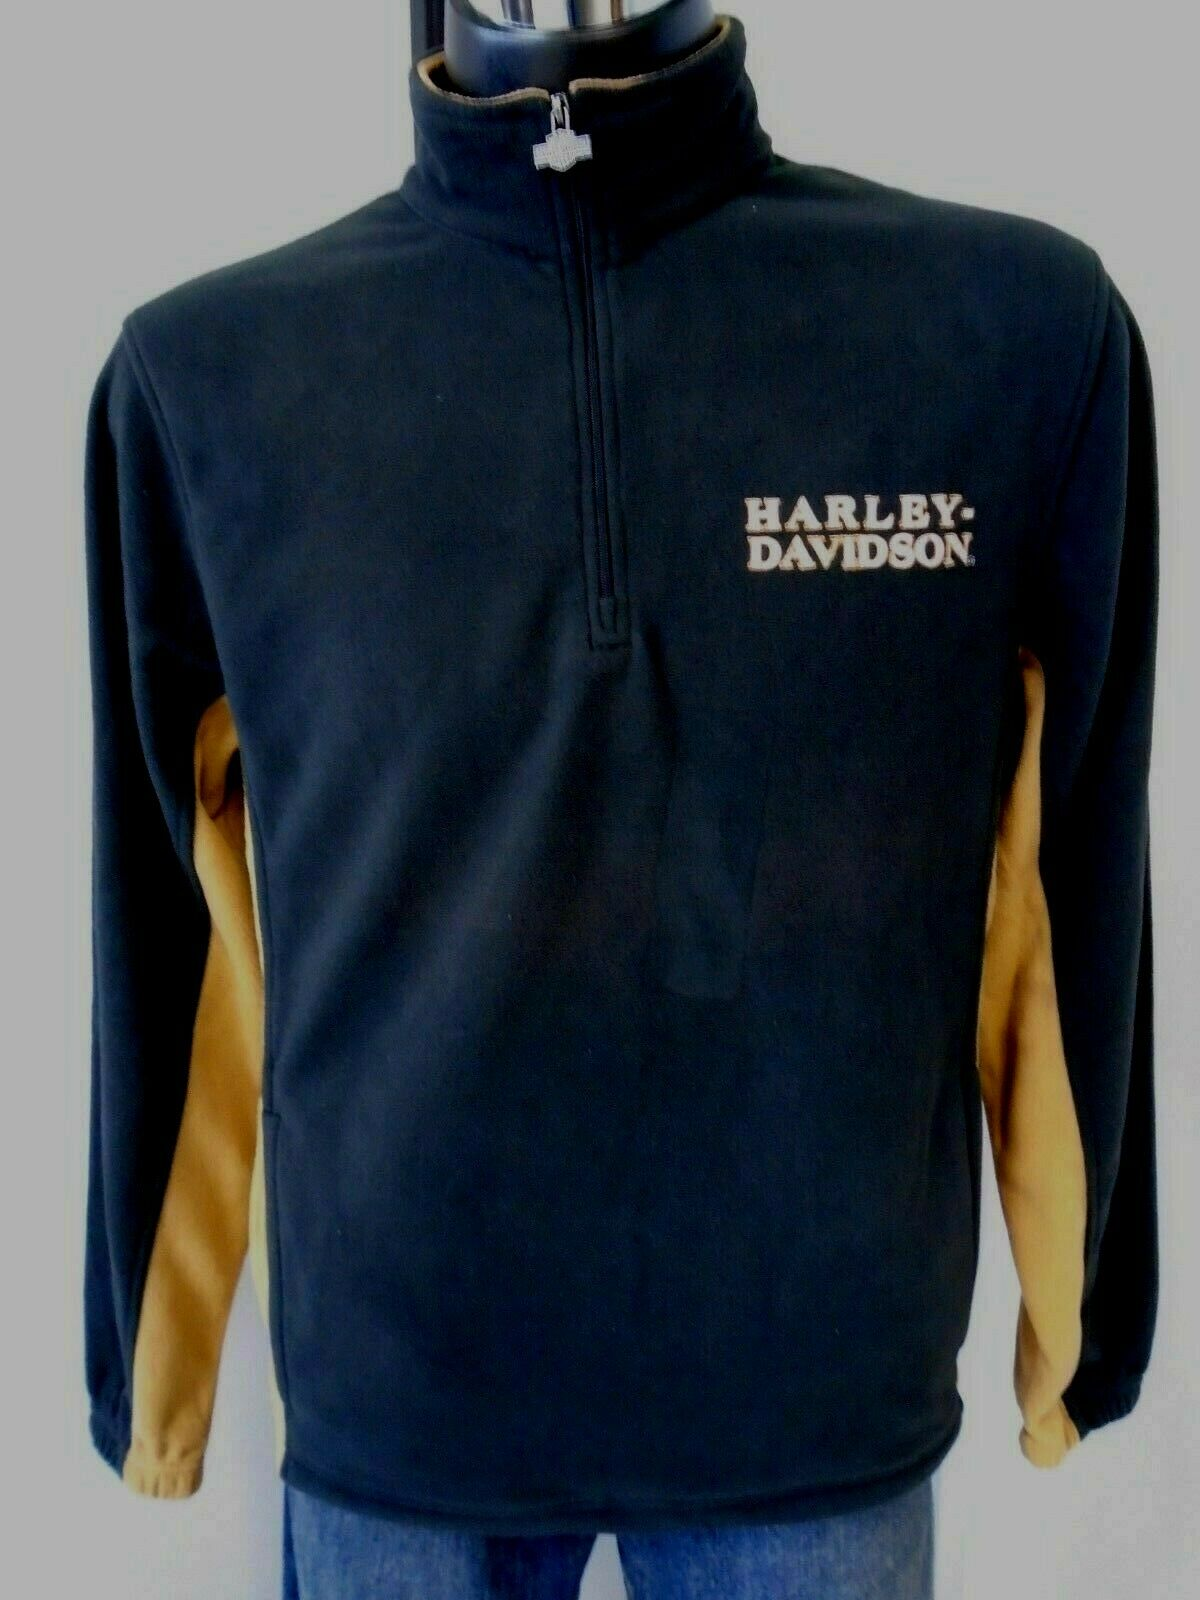 98cbc894c8a0 Davidson Men s 110th Anniversary Tailpipe Tradition Fleece Harley ...